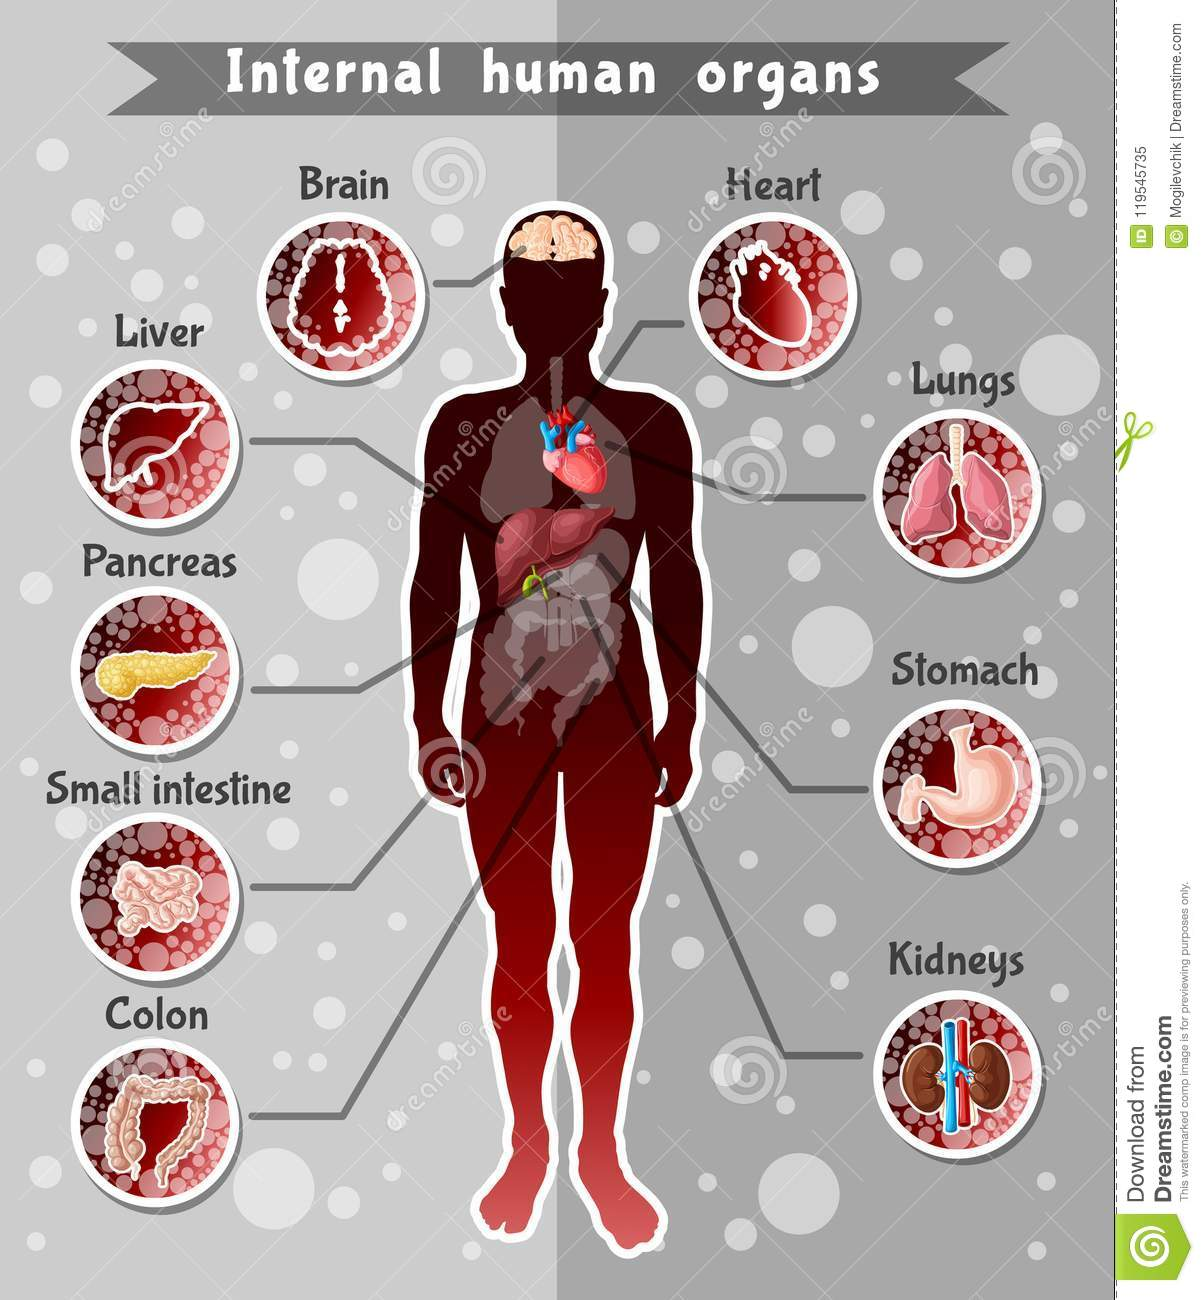 Human Internal Organs Template Stock Vector Illustration Of Health